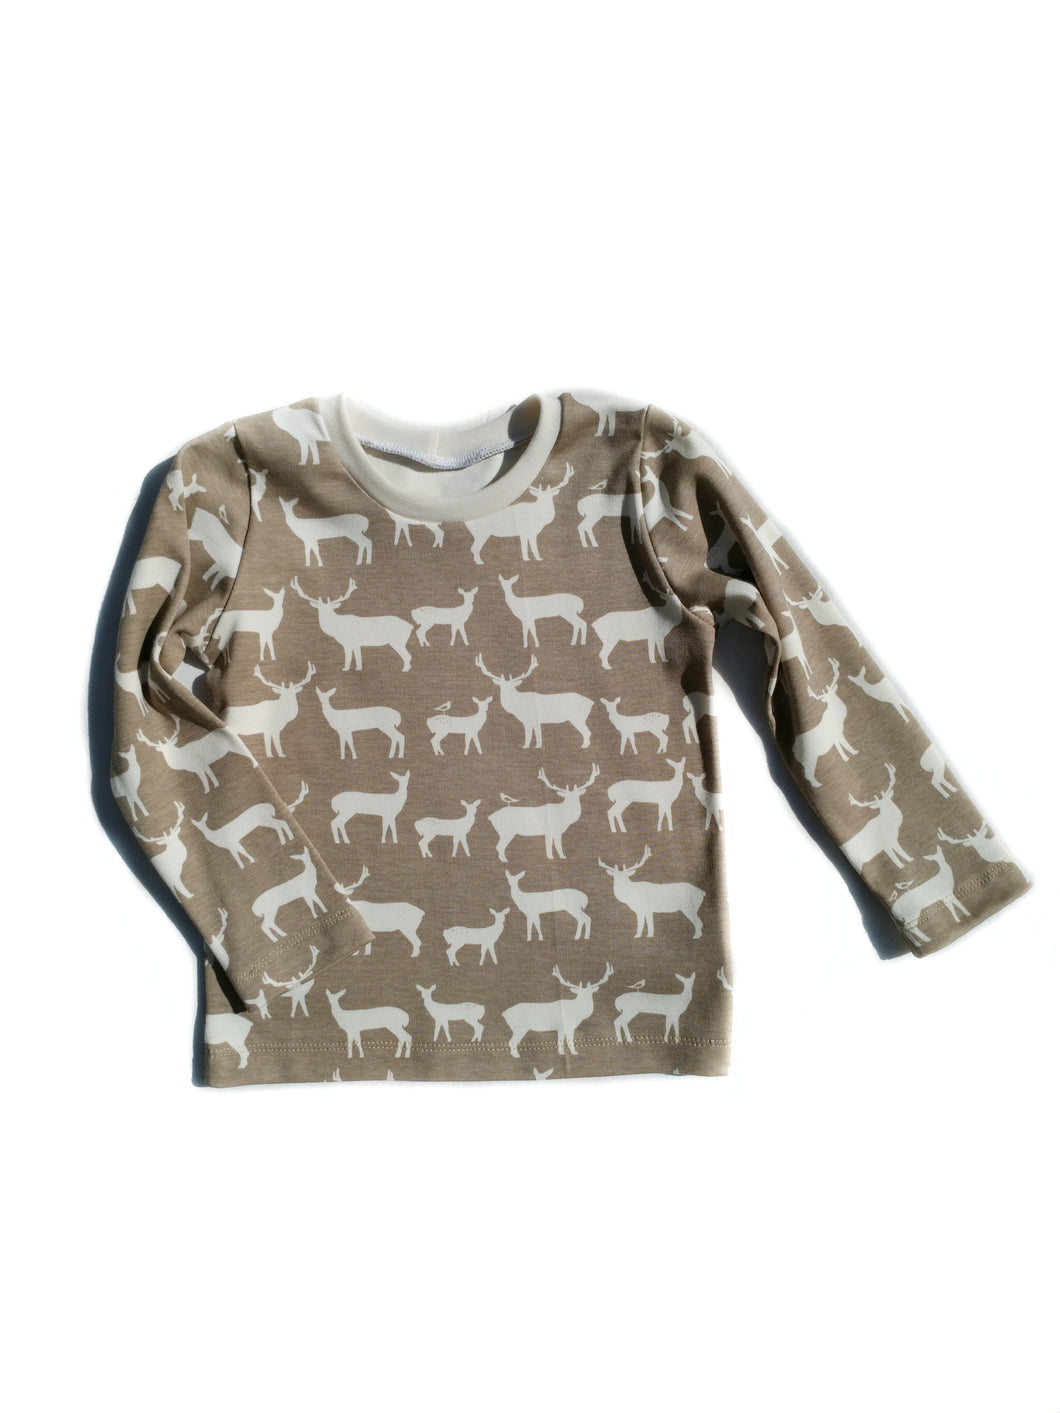 Basic Tee - Deer Family in Tan, sizes newborn to 5T/6